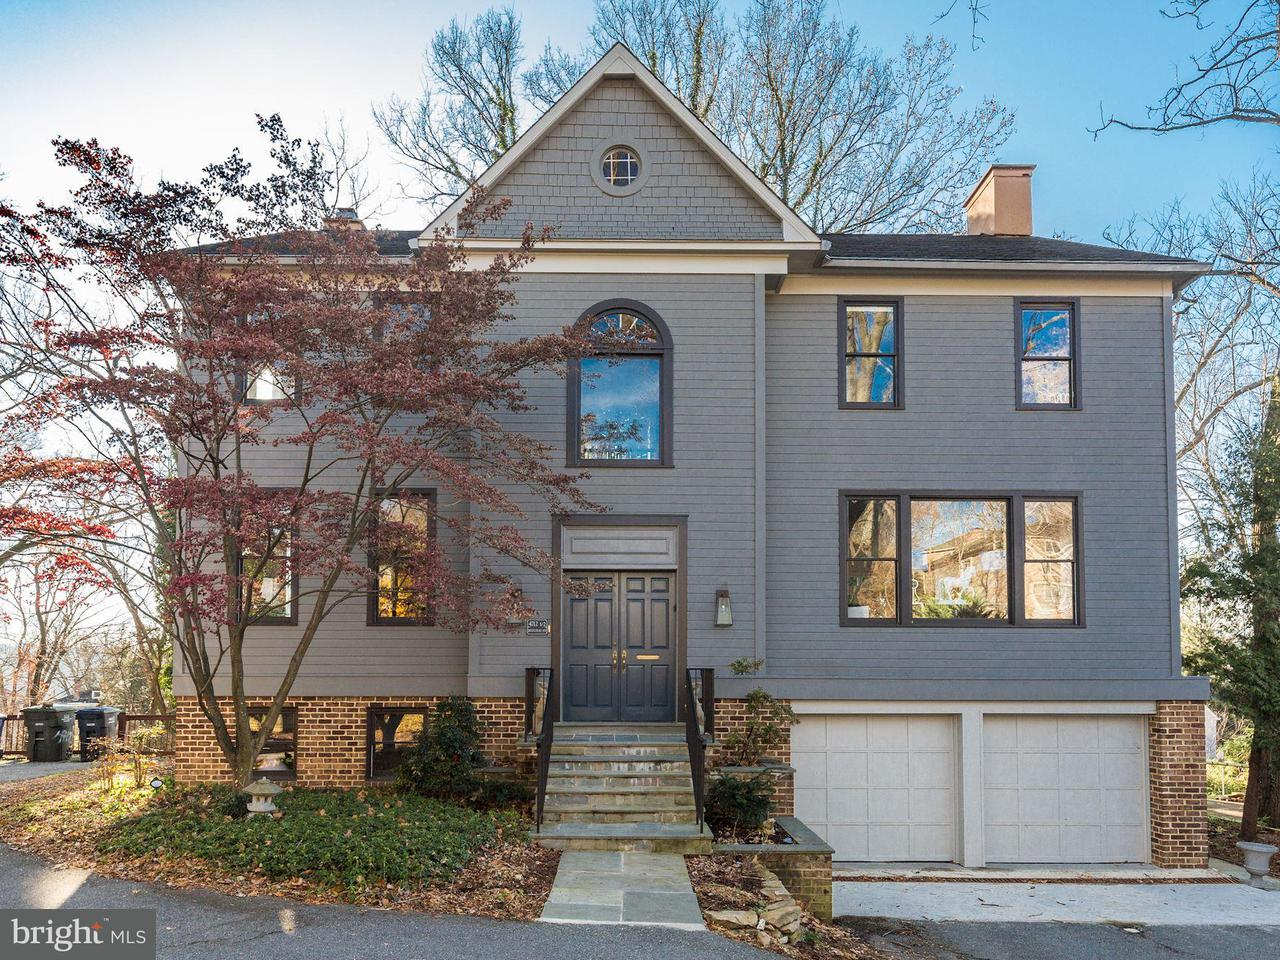 Single Family for Sale at 47121/2 Reservoir Rd NW Washington, District Of Columbia 20007 United States